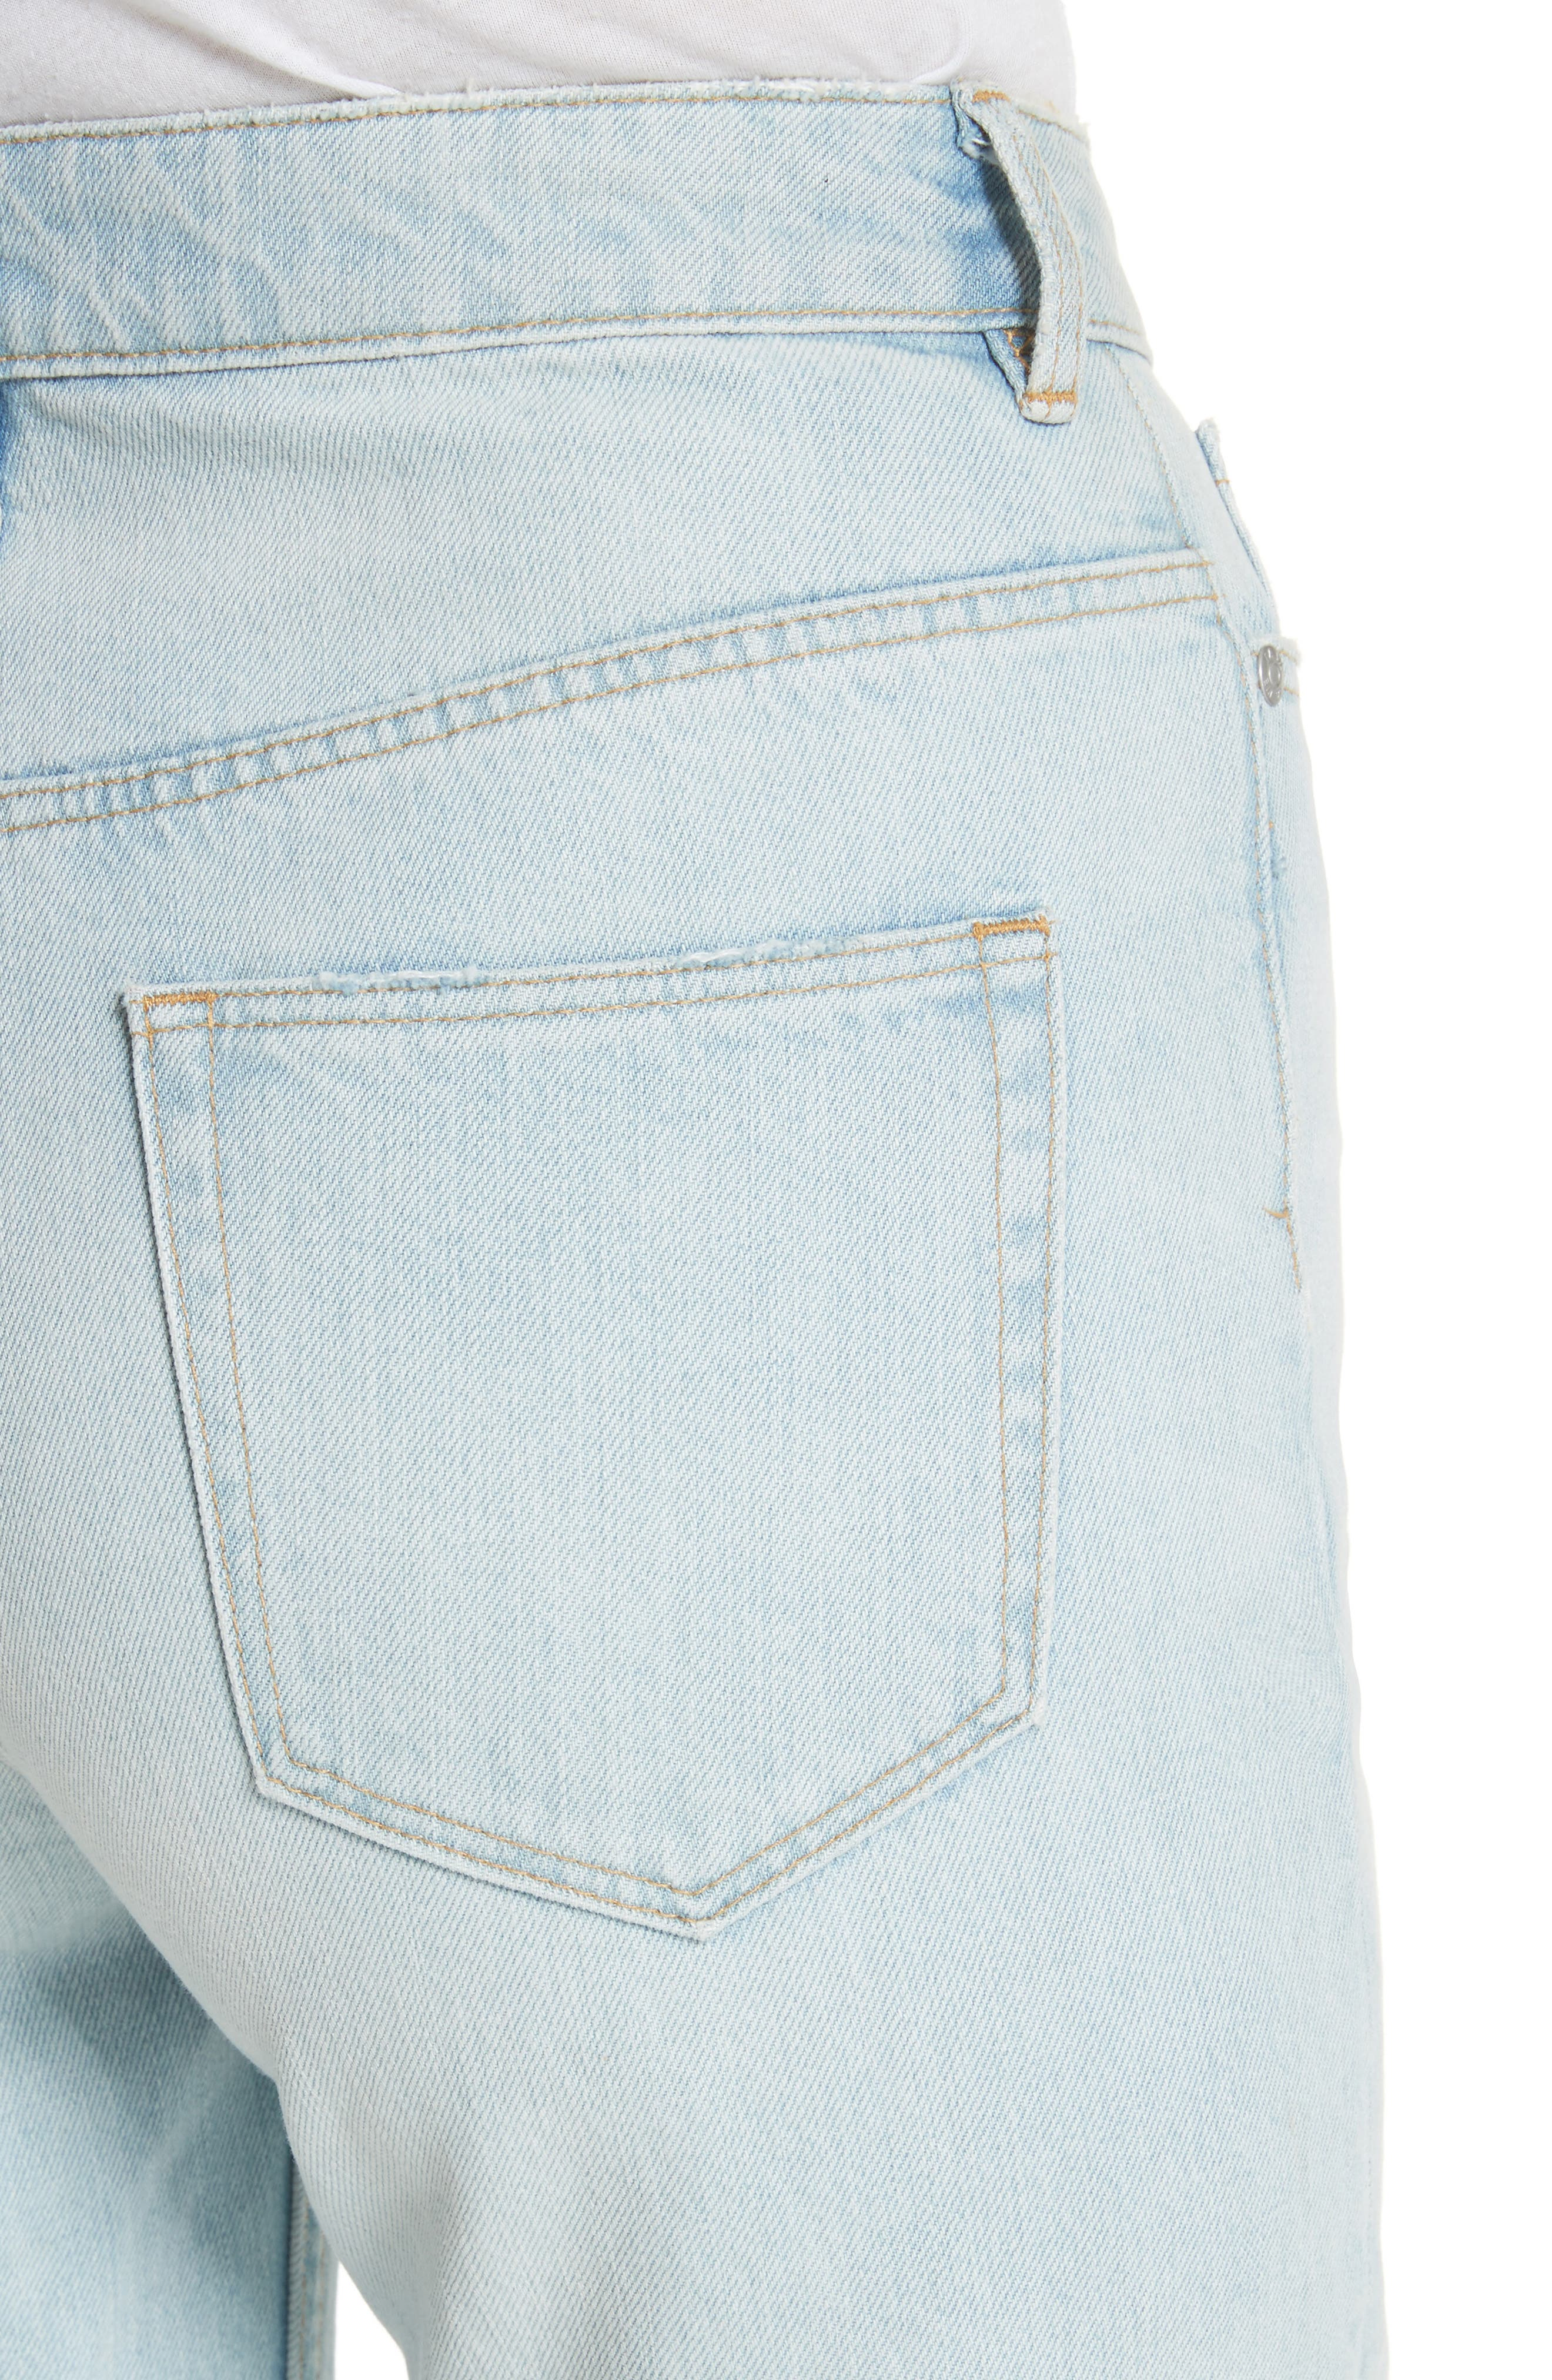 Tapered Jeans,                             Alternate thumbnail 4, color,                             Pale Blue Wash